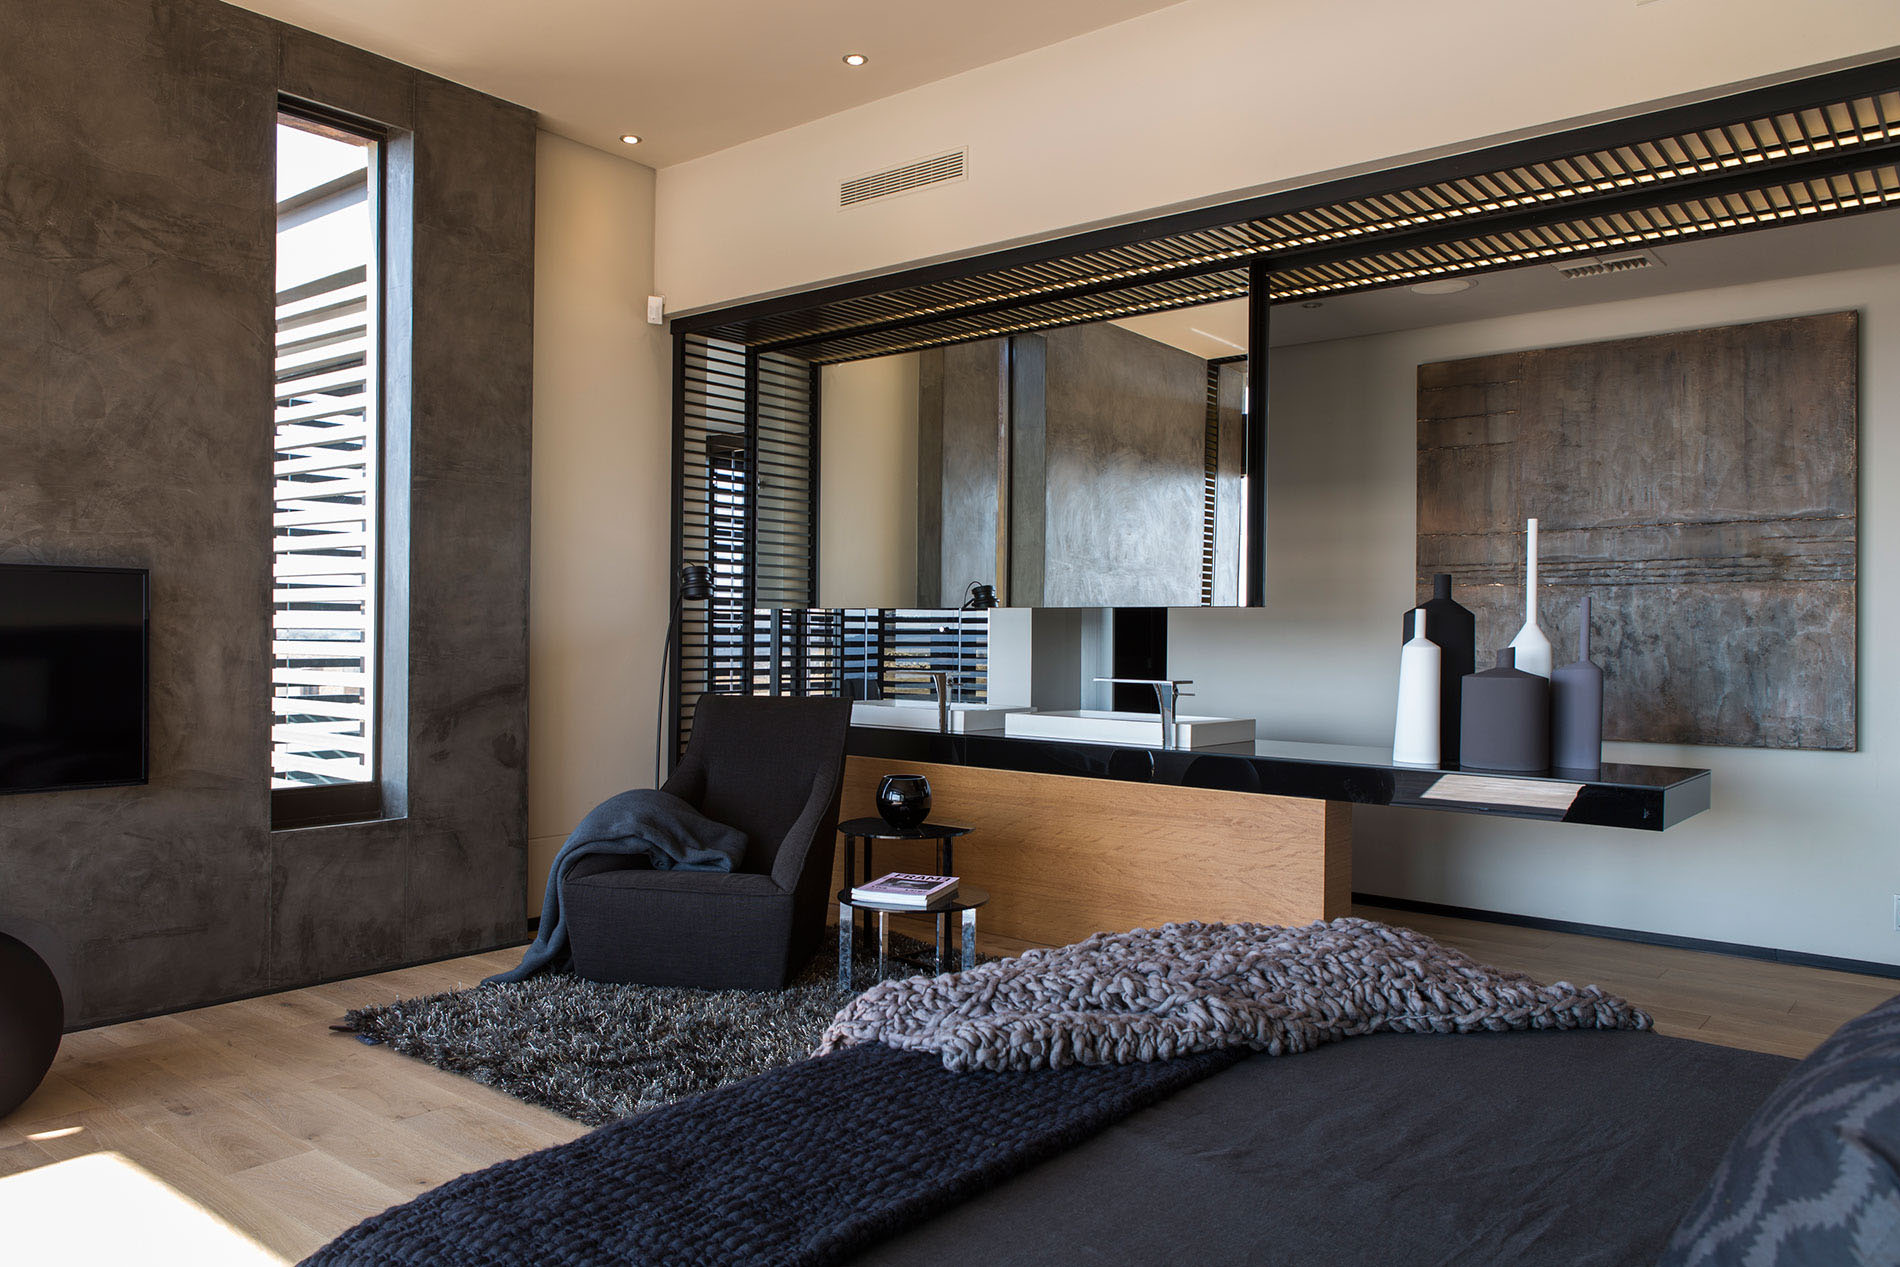 contemporary house furniture. For The Flooring, Wood Floor Is Best Choice Creating Warmth To Bedroom. Contemporary House Design Ideas Can Be Successfully Realized In Furniture